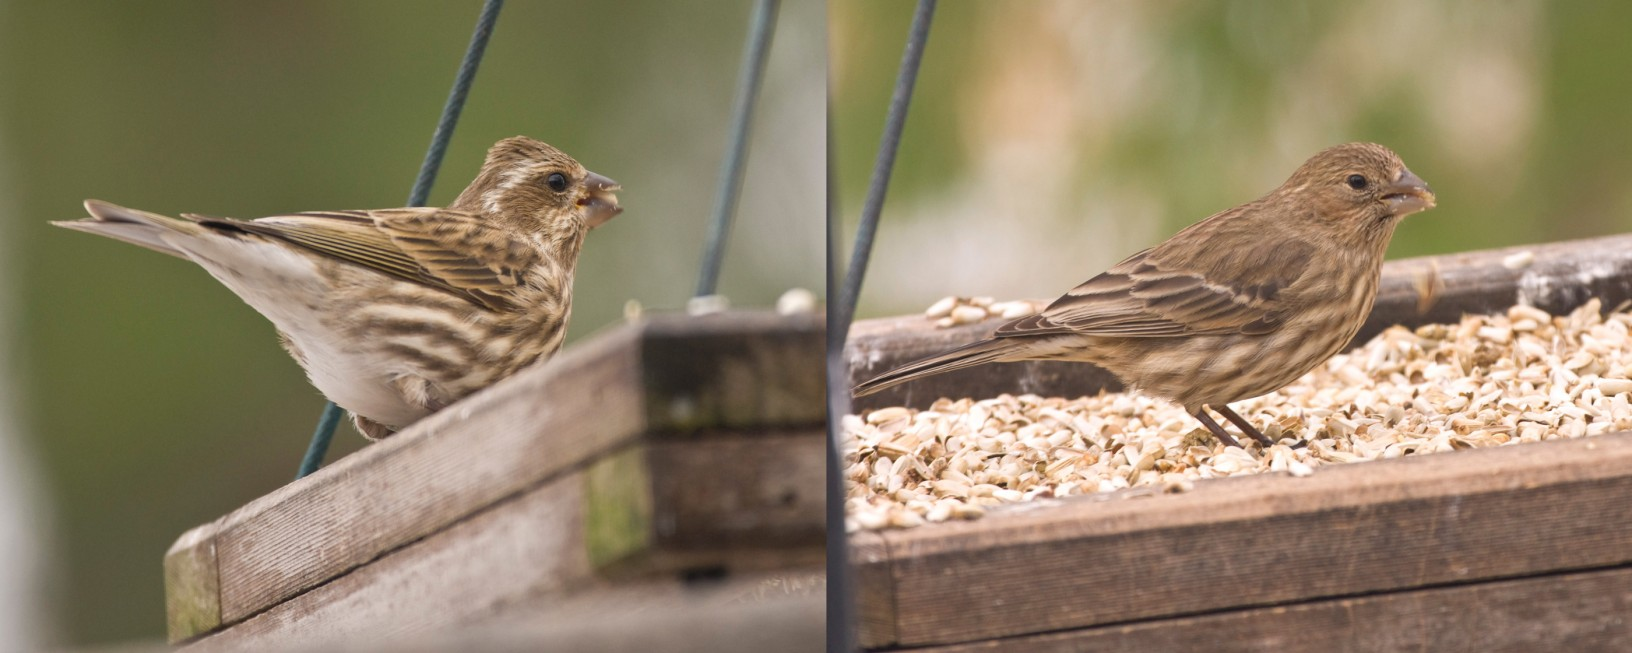 Left- female Purple Finch, Right- female House Finch